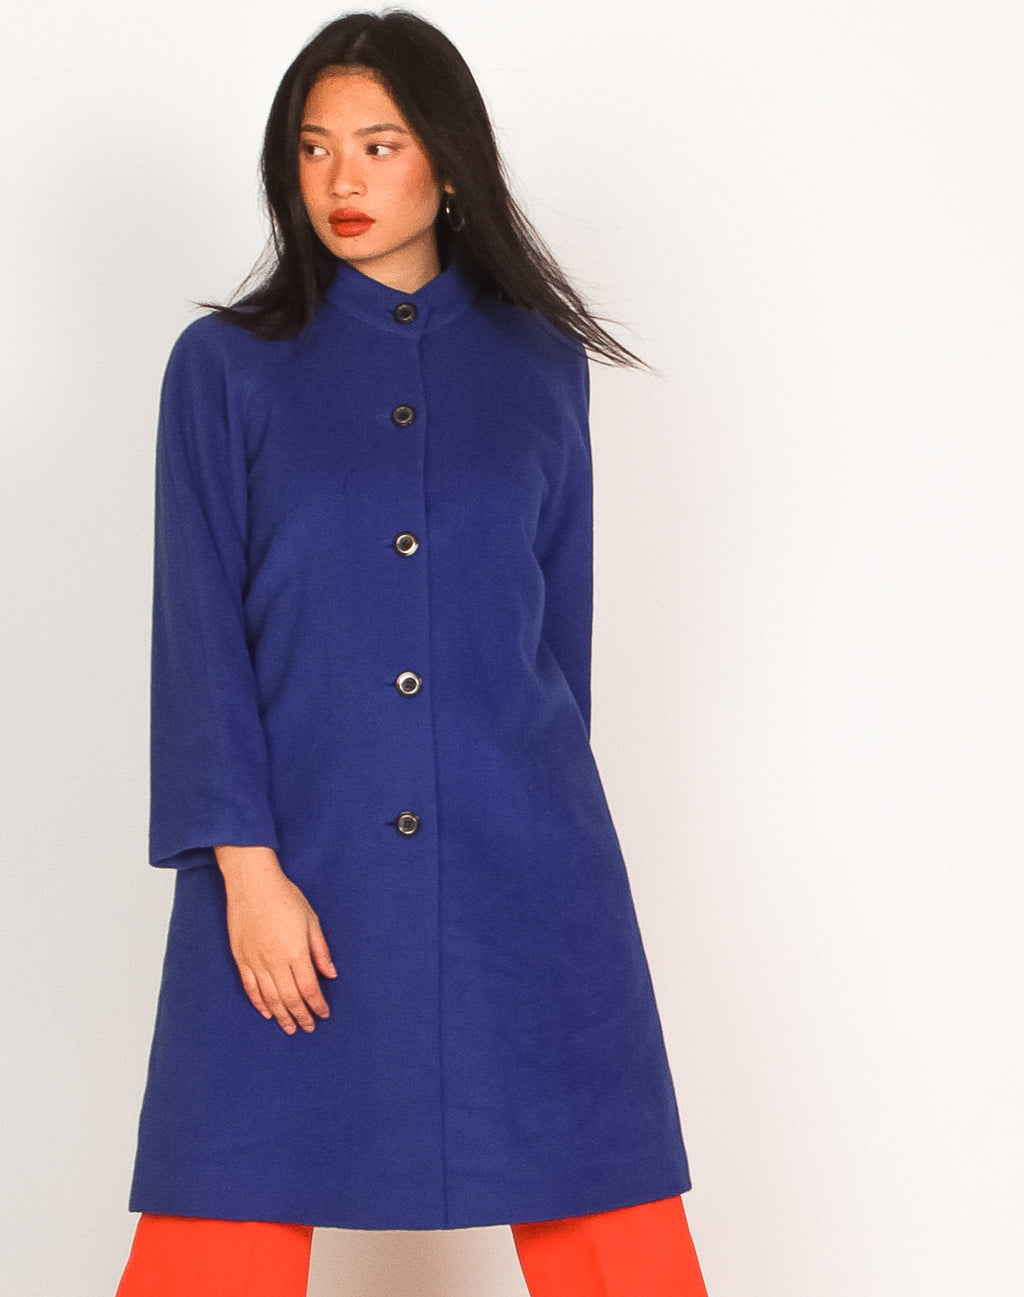 ROYAL BLUE WOOLLEN SWING JACKET